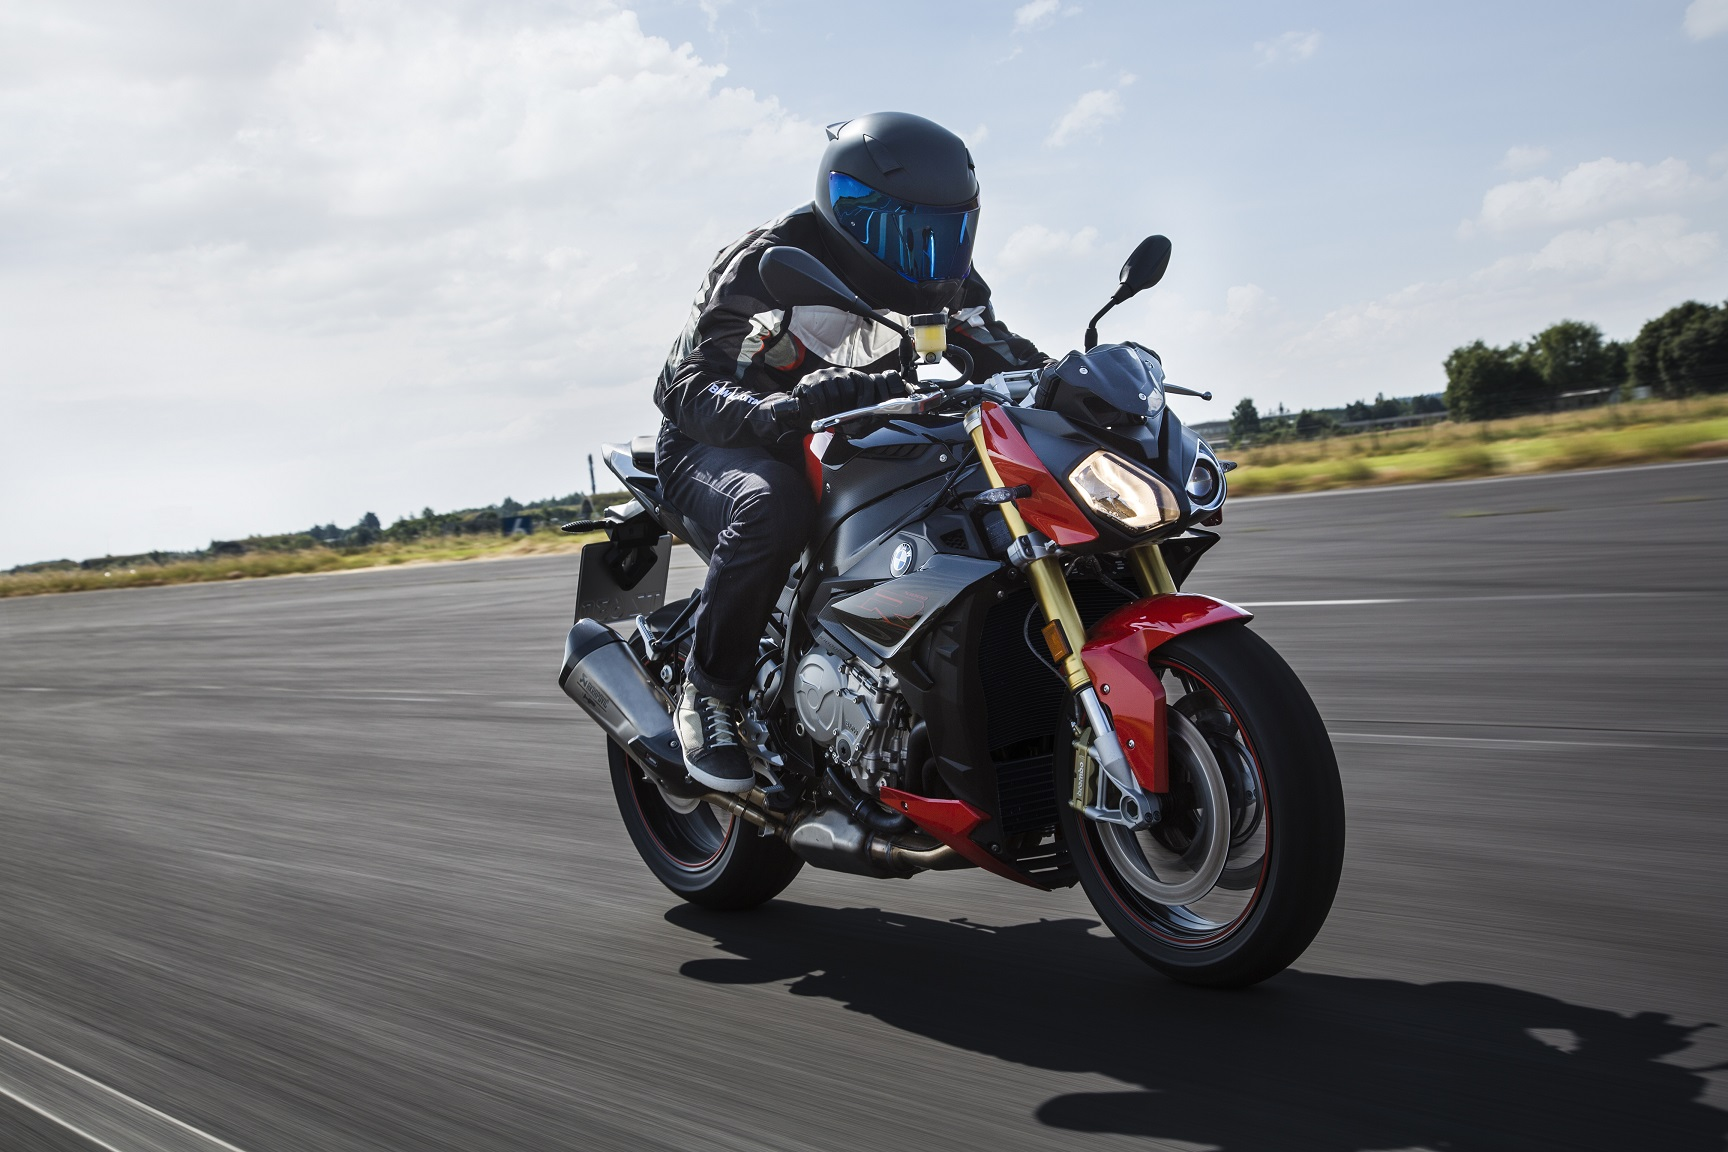 The new BMW S 1000 R has been improved to provide better handling and safety.